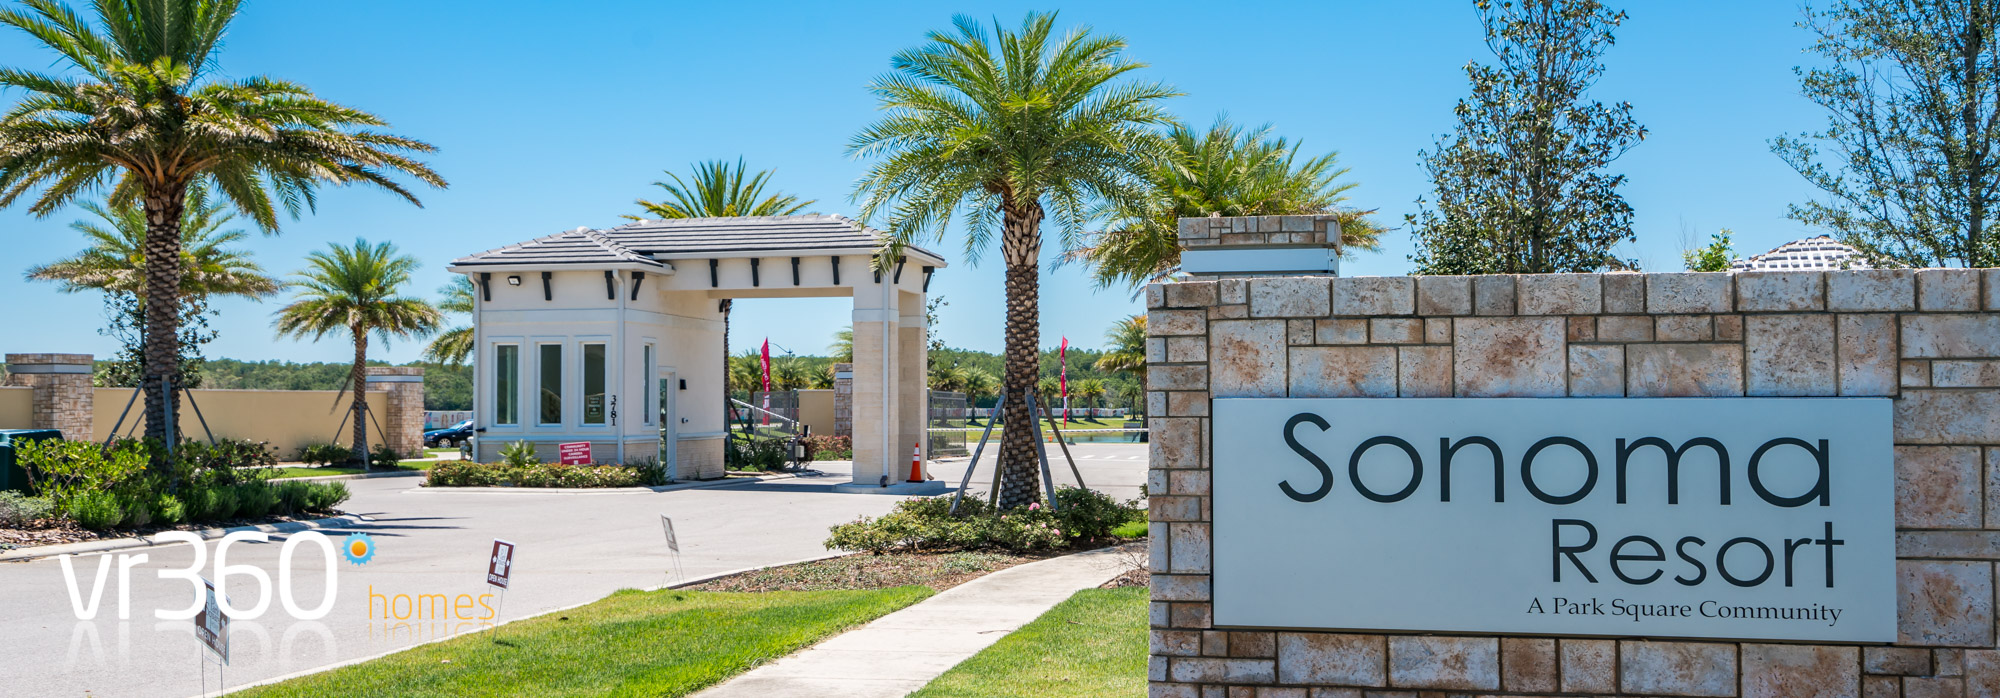 Sonoma Resort Gated Entrance in Kissimmee, Florida